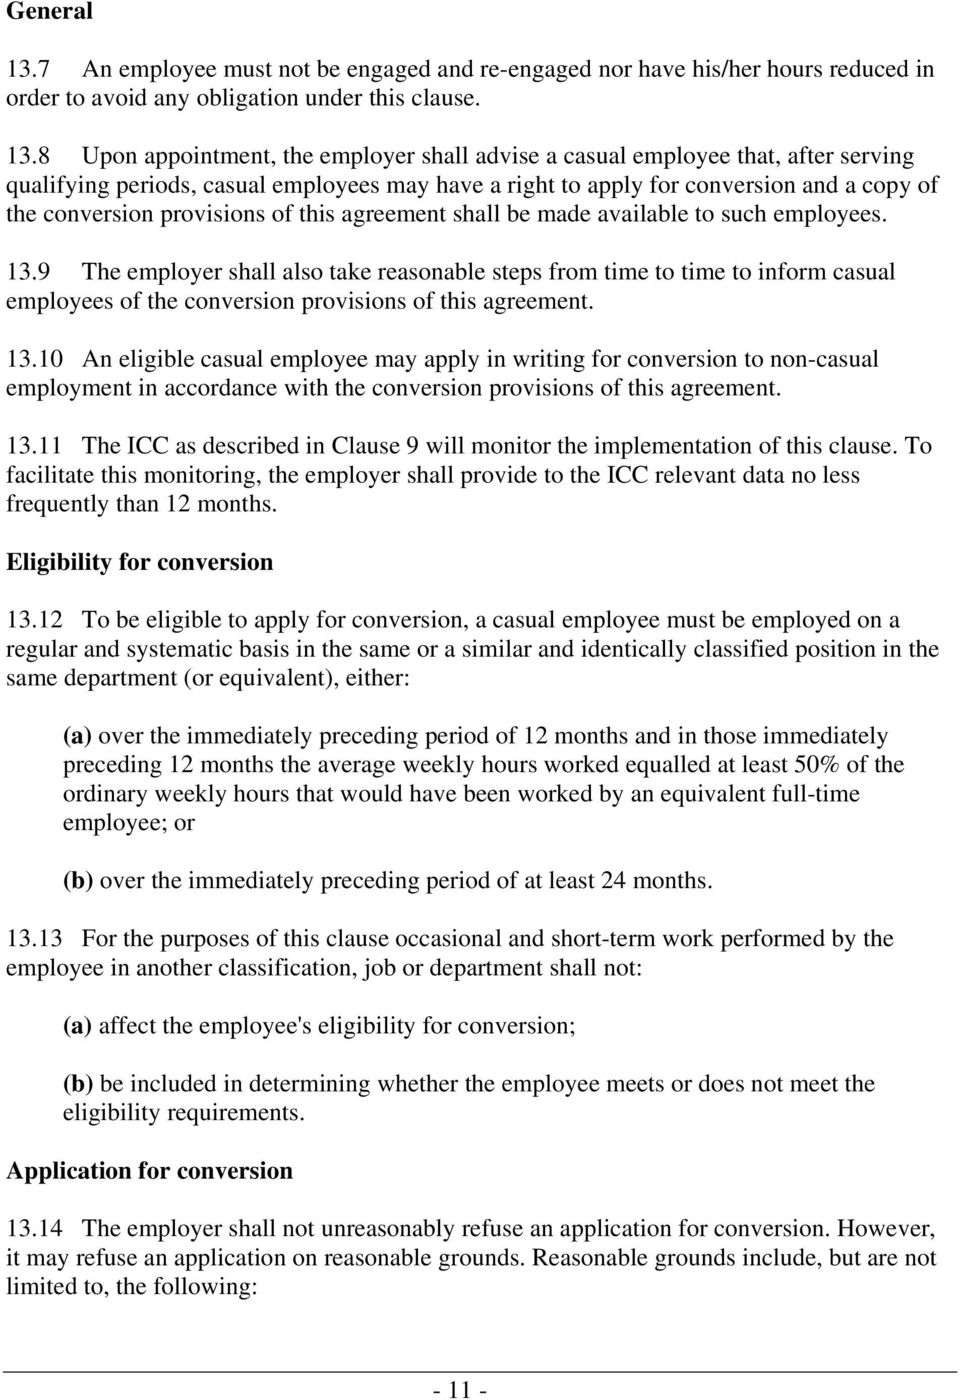 8 Upon appointment, the employer shall advise a casual employee that, after serving qualifying periods, casual employees may have a right to apply for conversion and a copy of the conversion